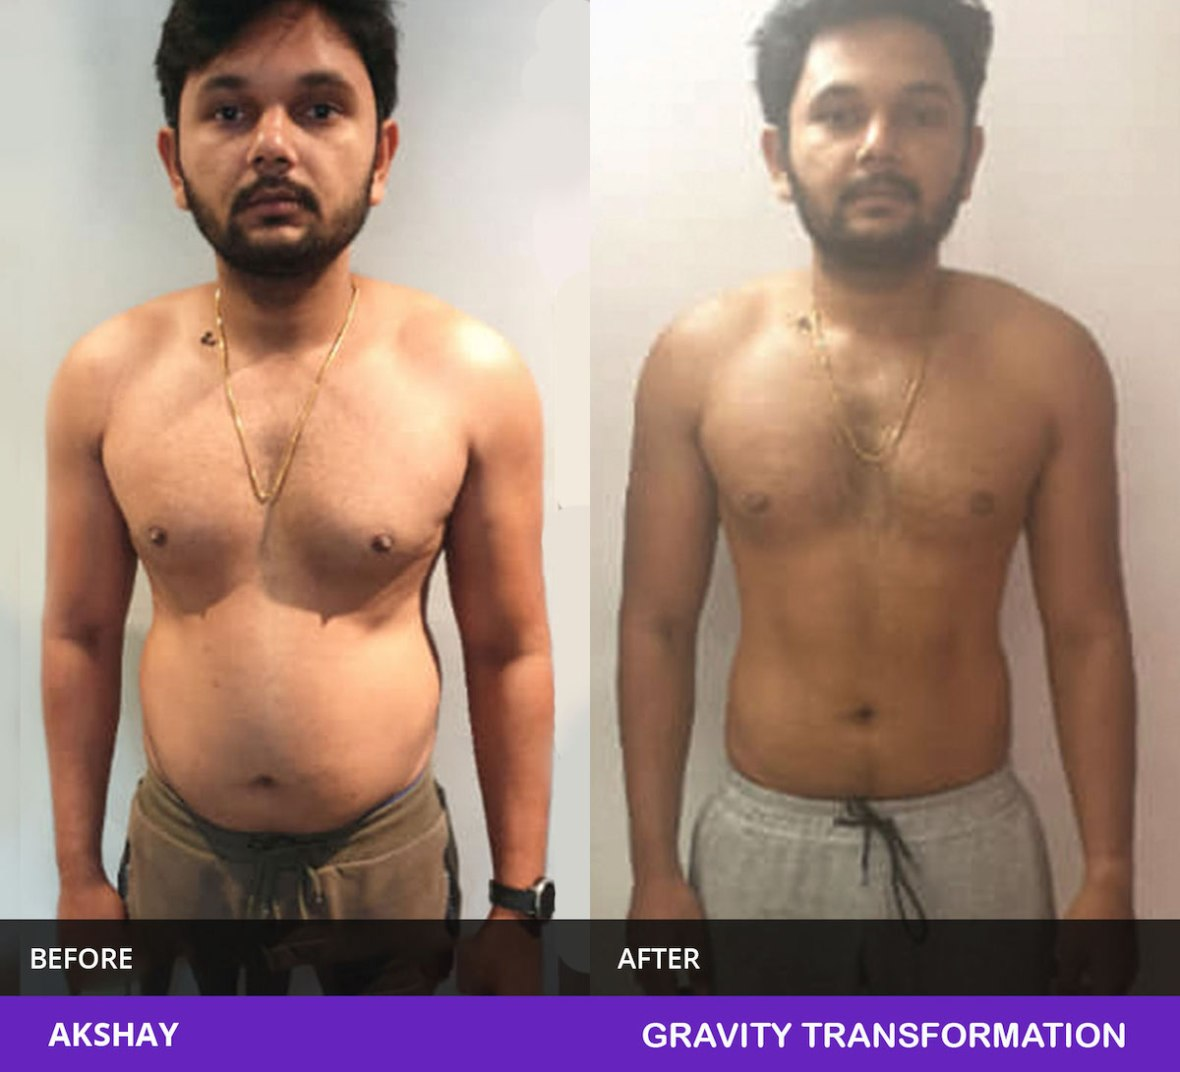 akshay-before-after-transformation